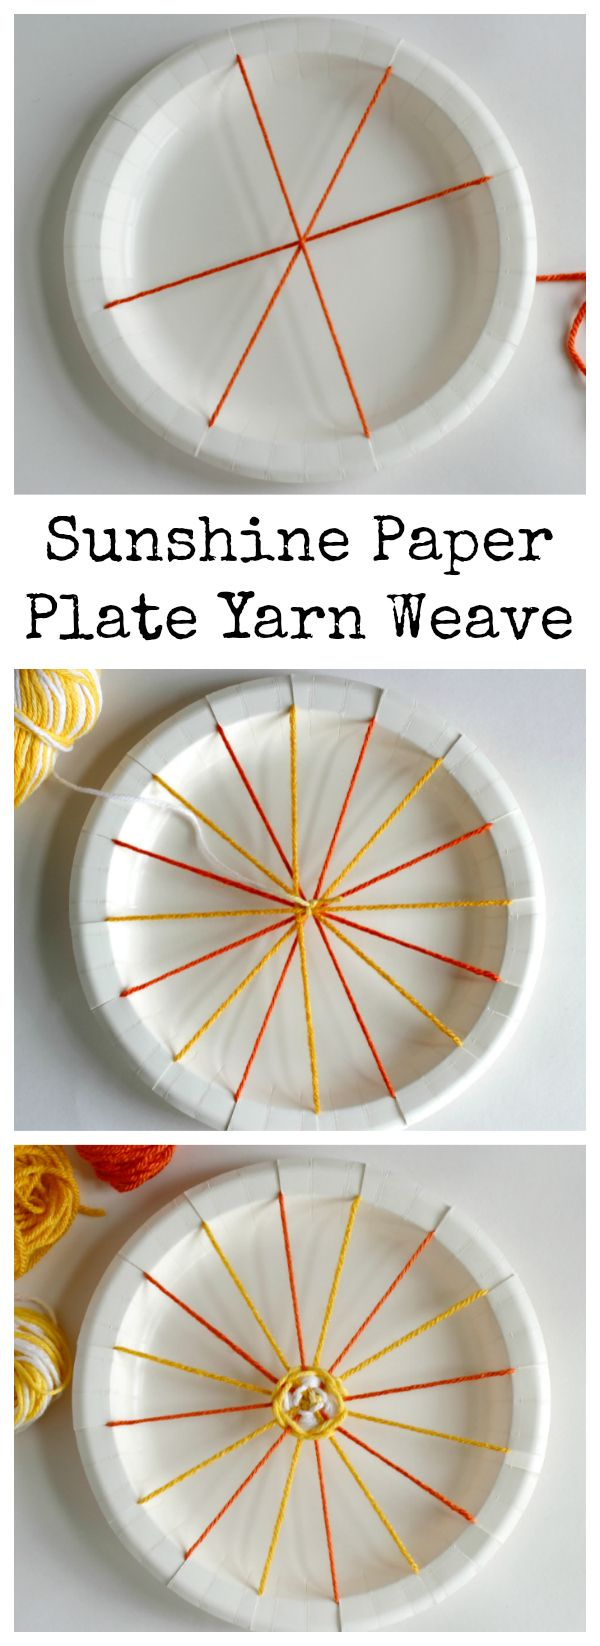 How To Sunshine Paper Plate Yarn Weave